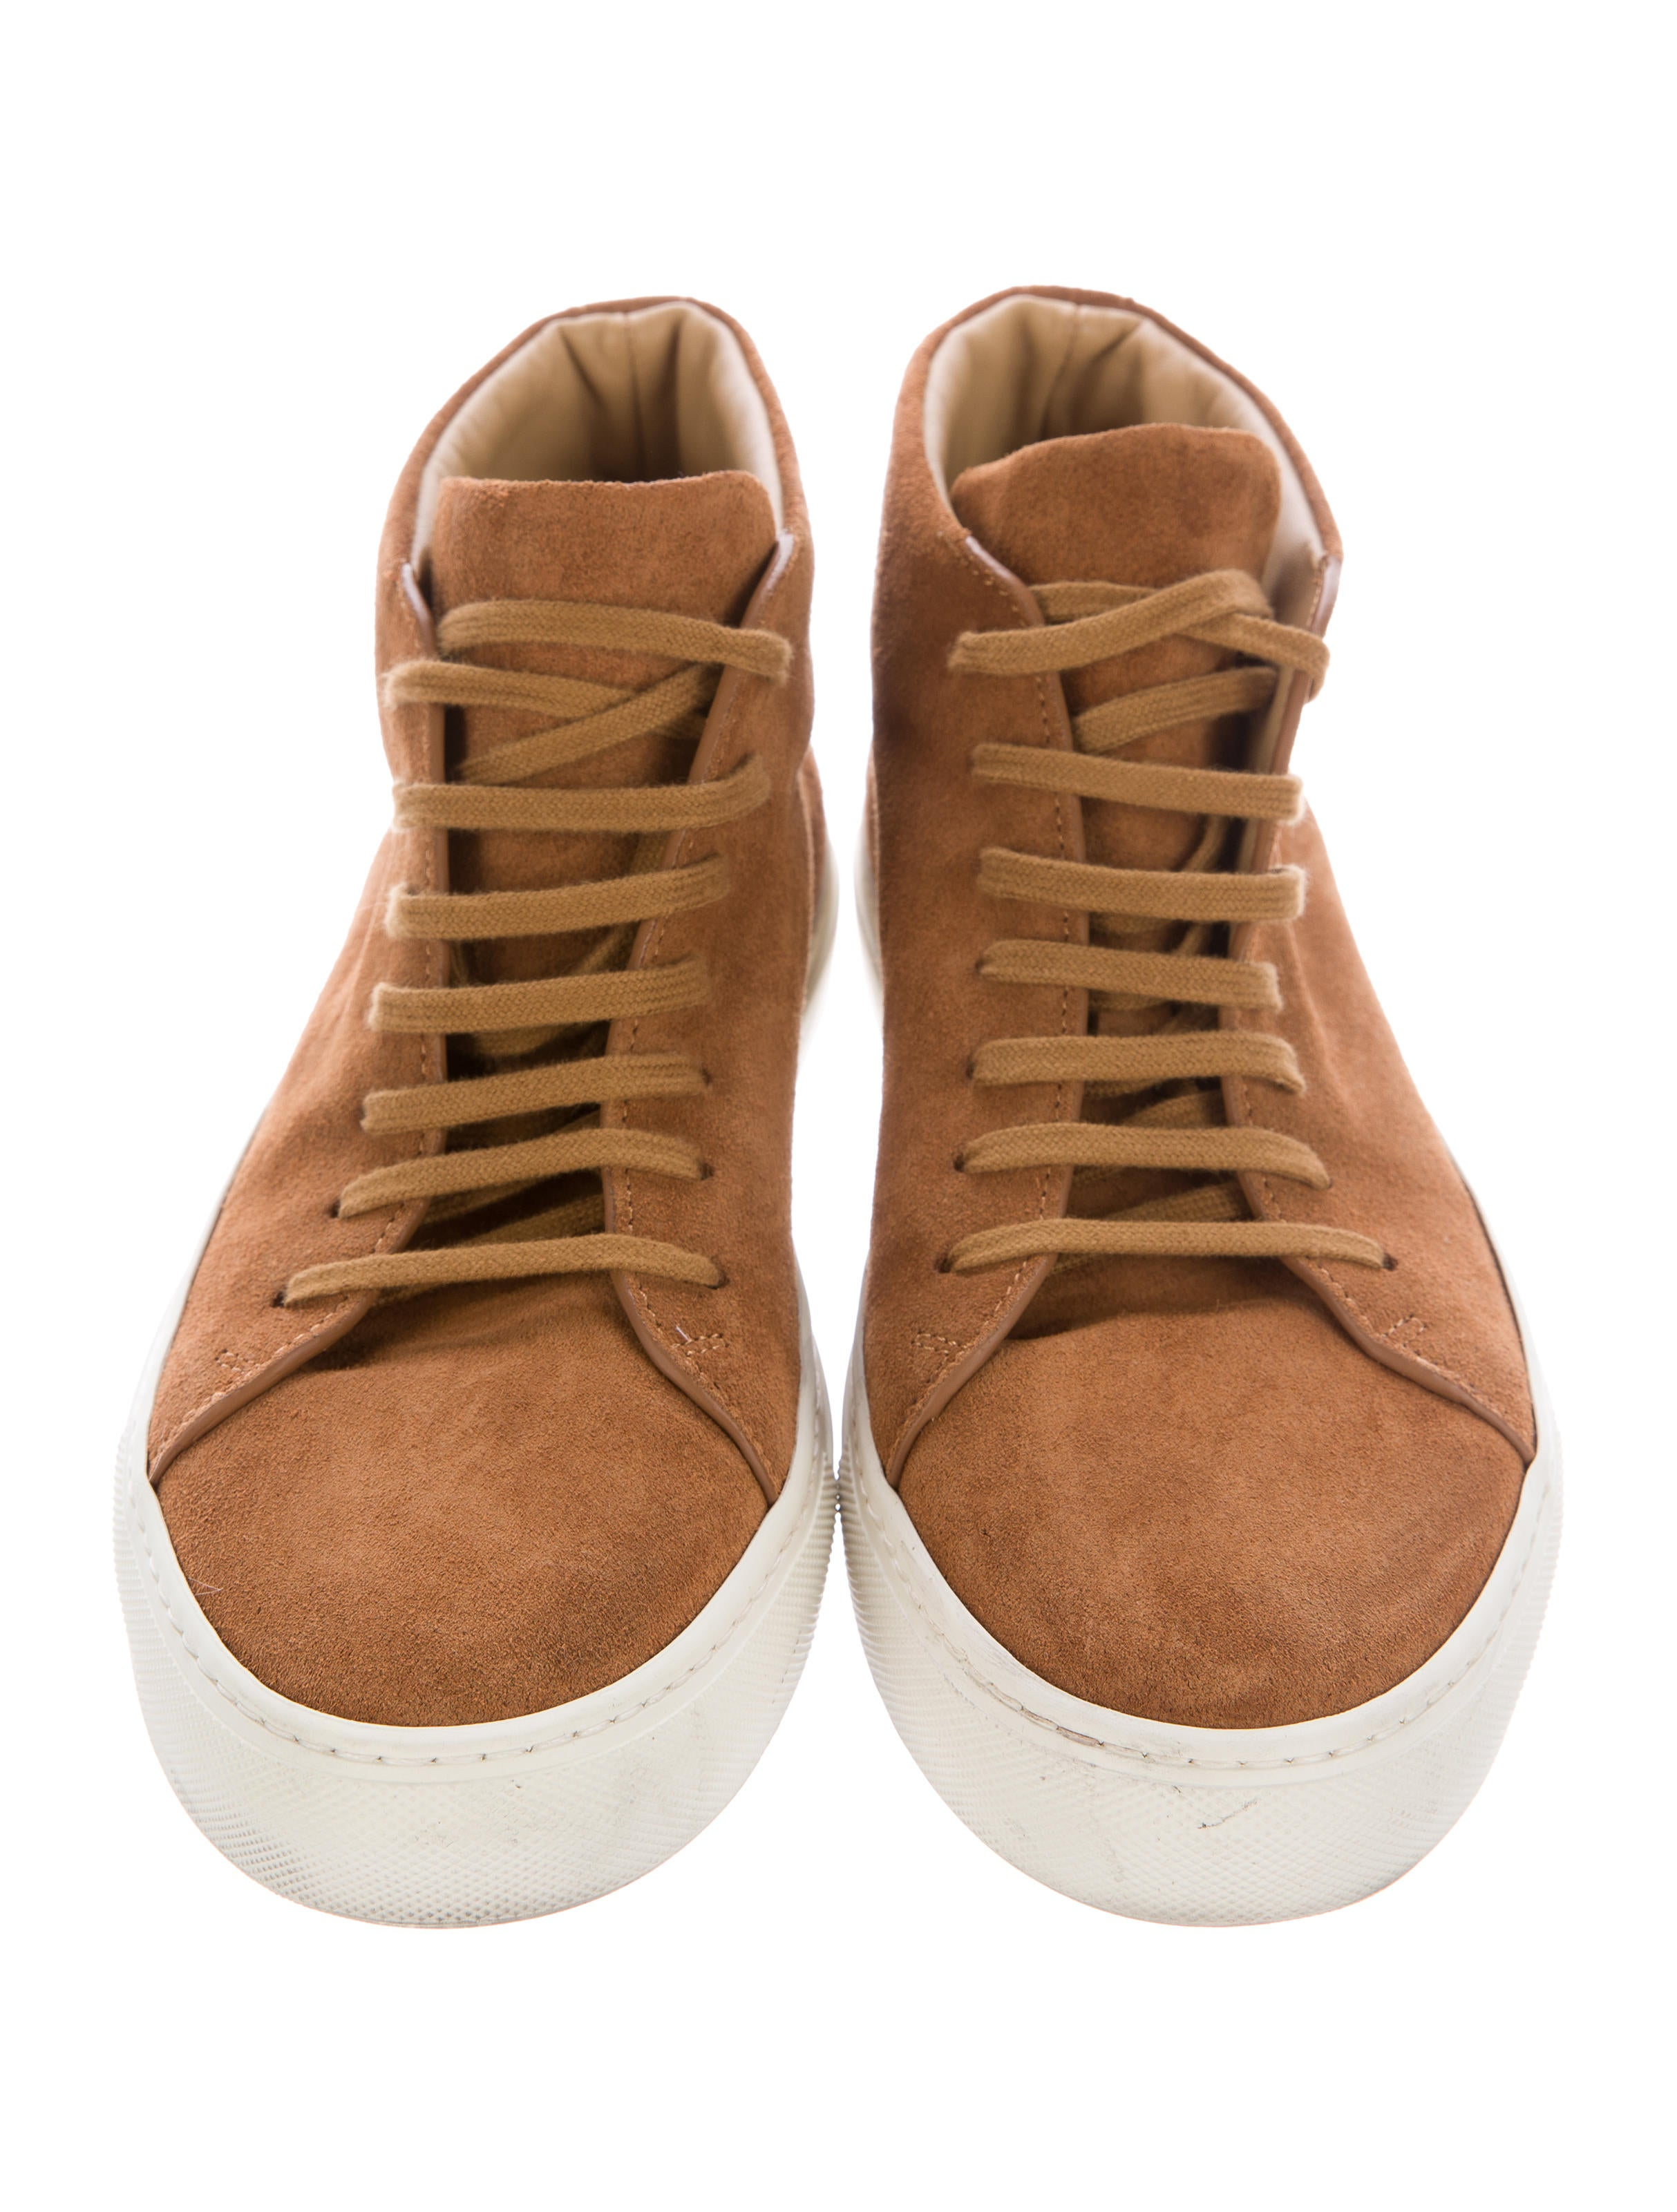 common projects achilles suede sneakers shoes w1c20479 the realreal. Black Bedroom Furniture Sets. Home Design Ideas